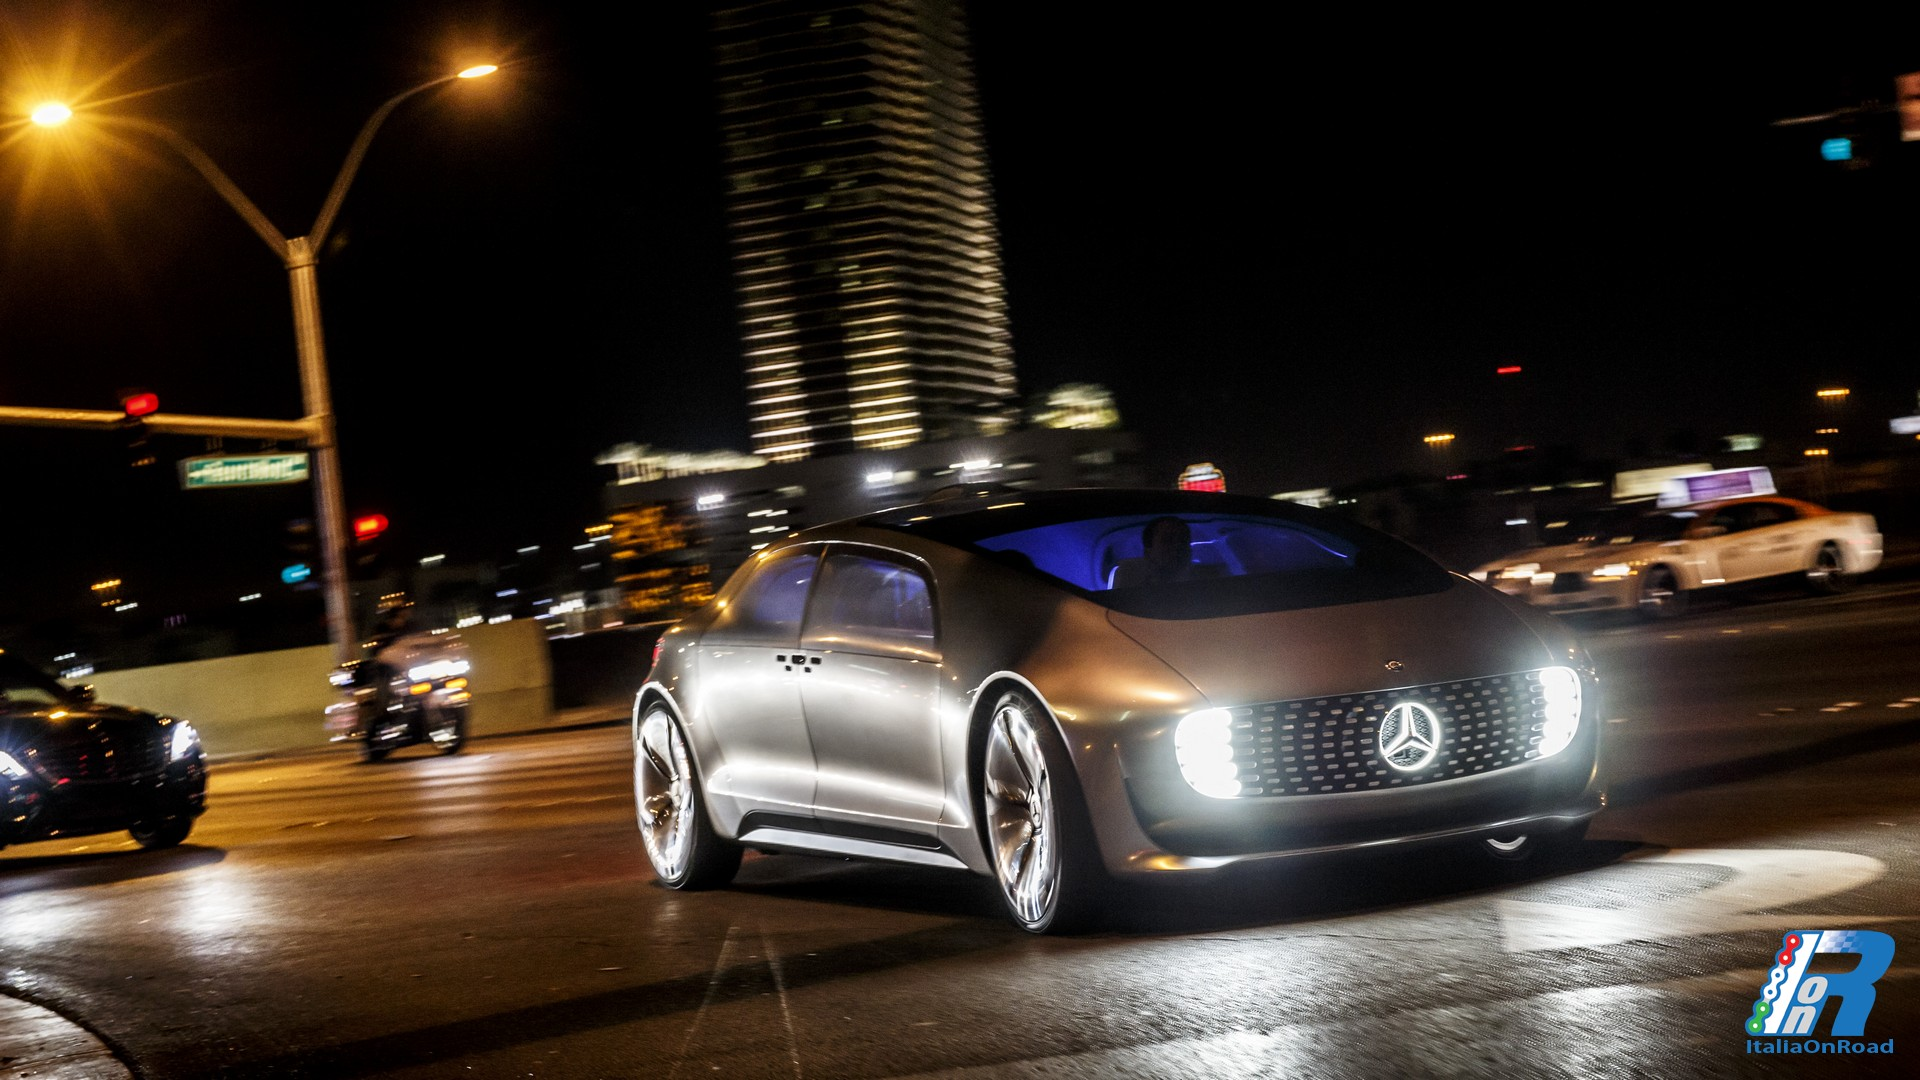 Mercedes benz f 015 luxury in motion il futuro arrivato for Mercedes benz f 015